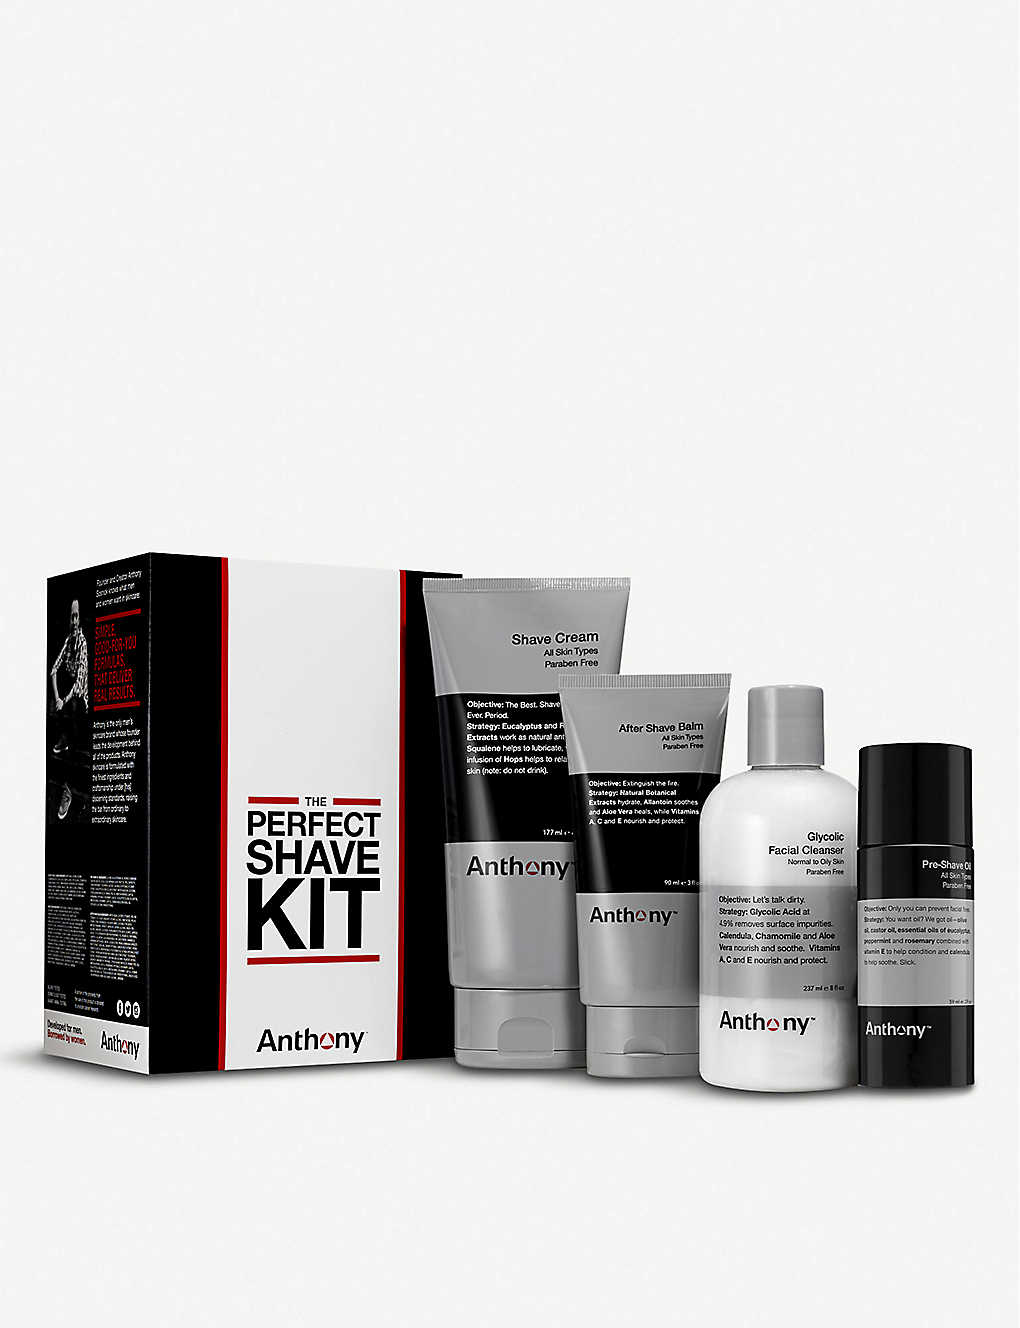 ANTHONY: The Perfect Shave Kit